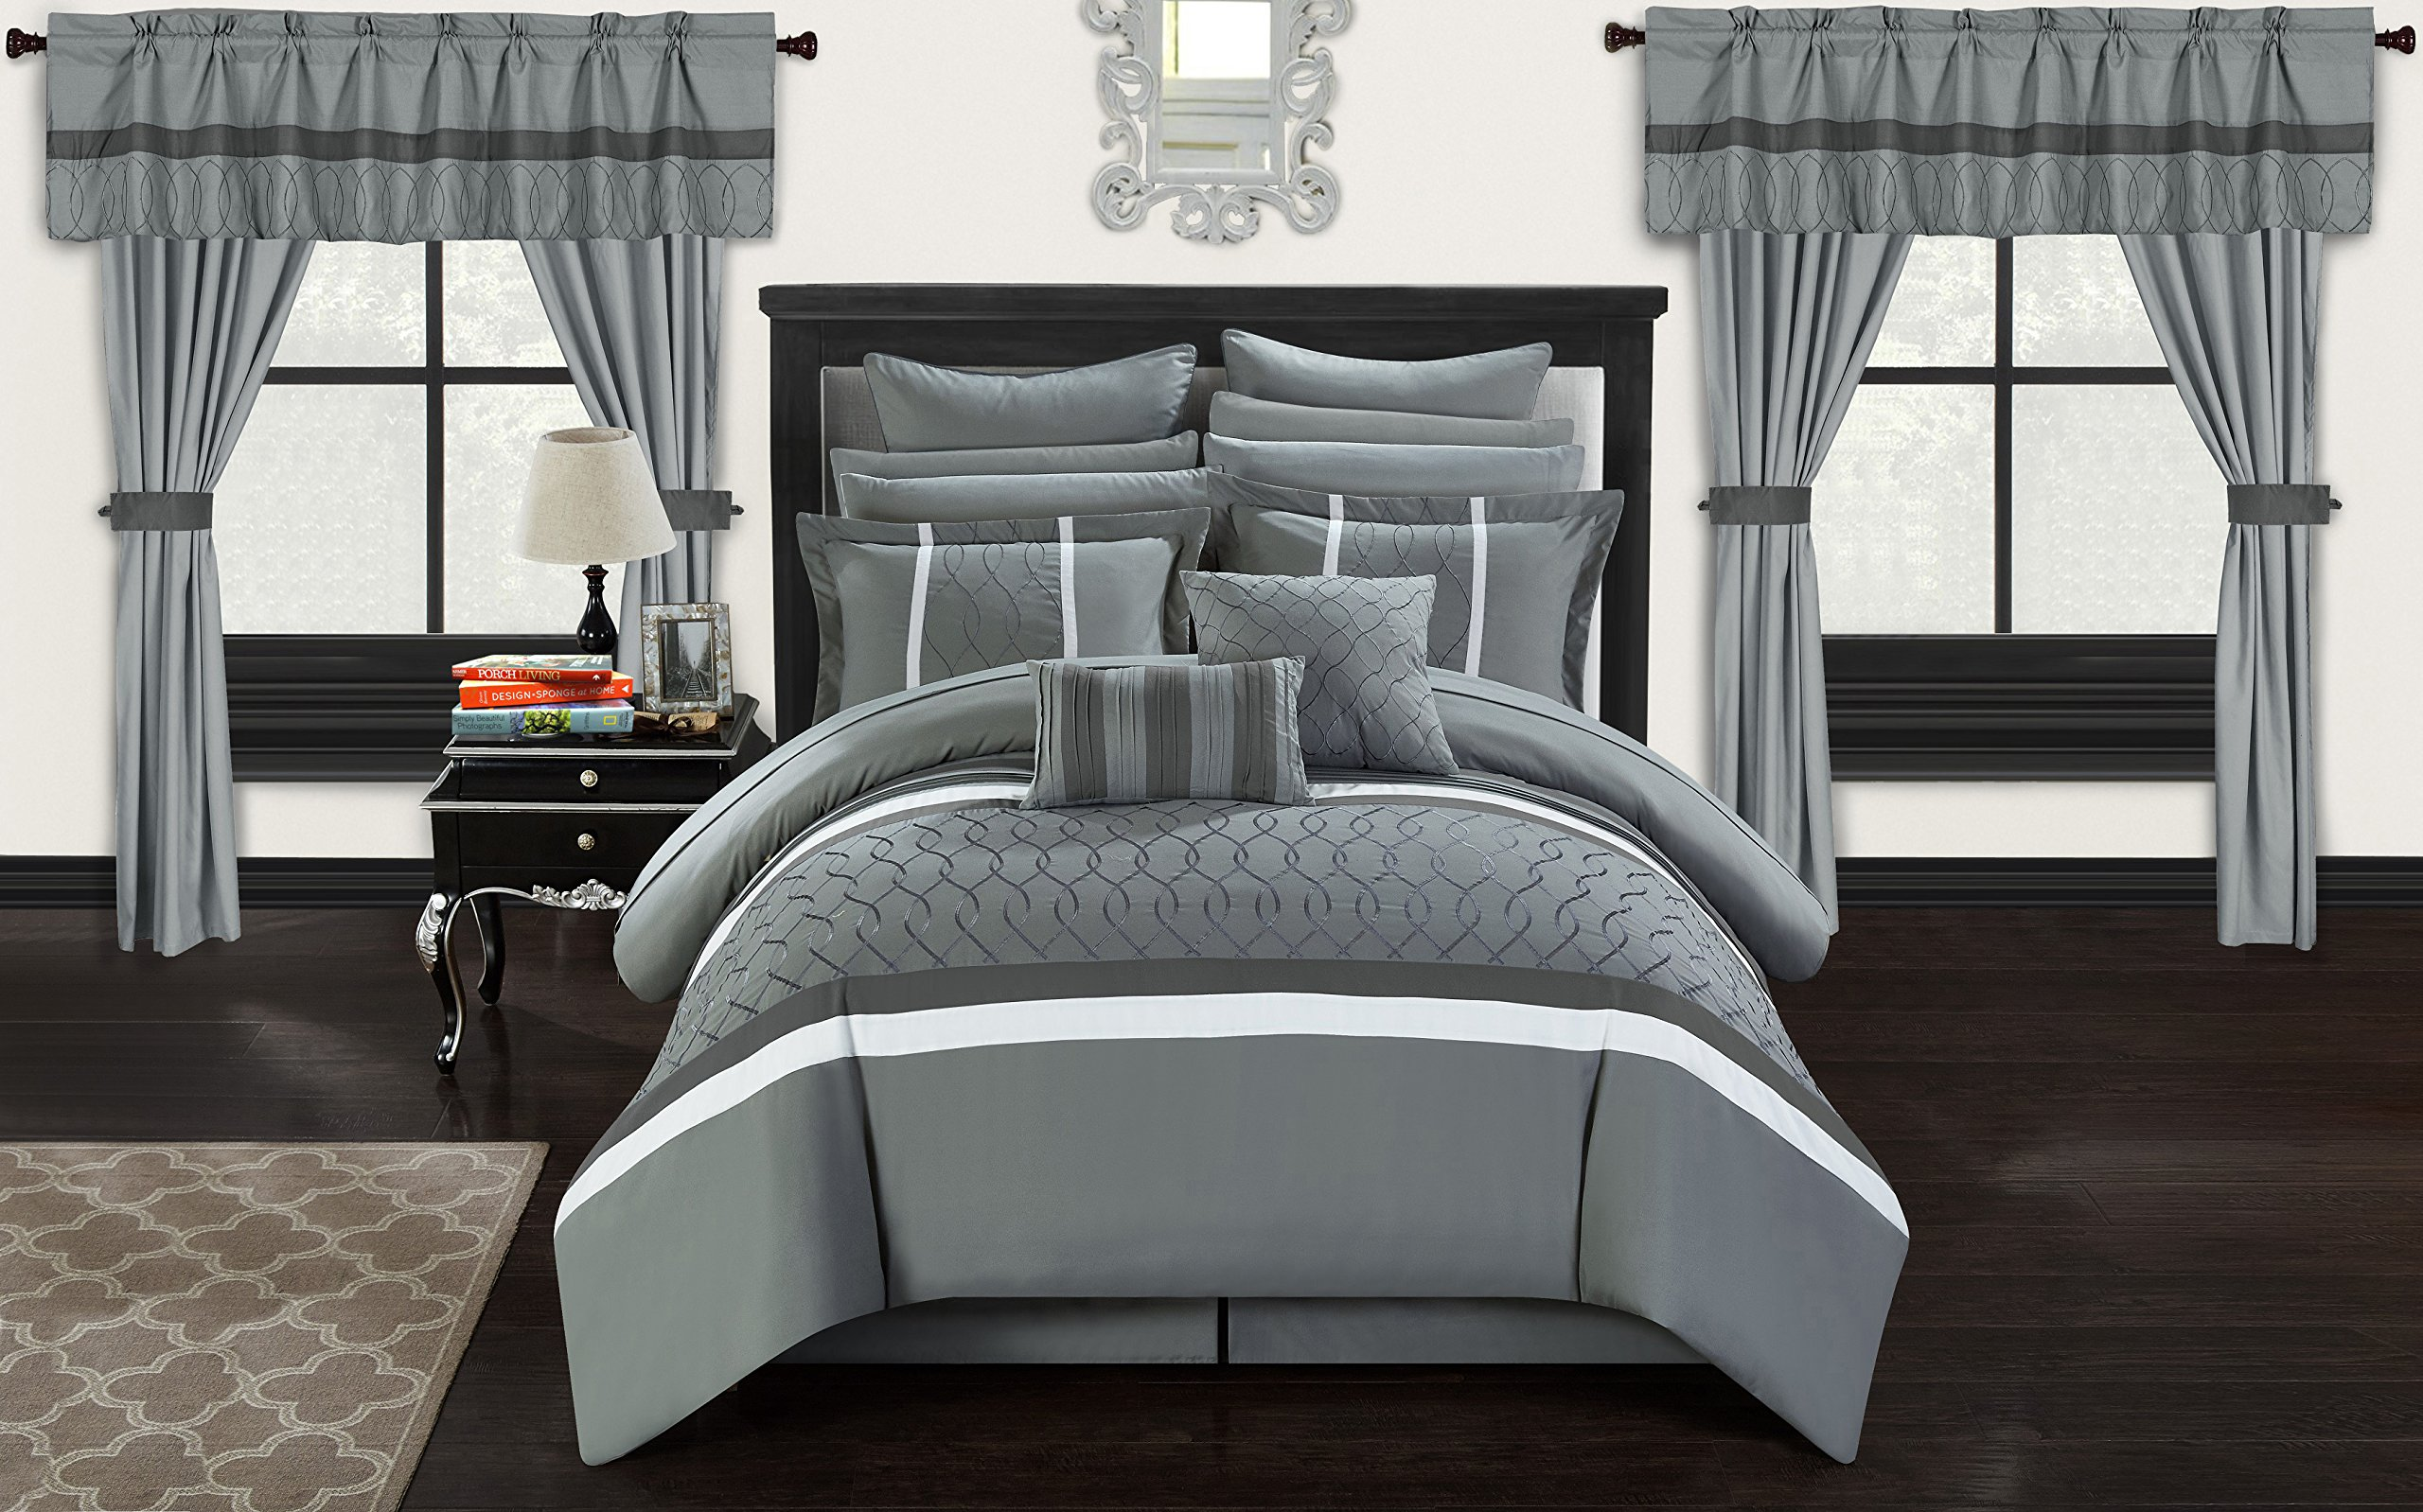 Chic Home CS2875-AN Dinah 24 Piece Bed in A Bag Comforter Set, Grey, King by Chic Home